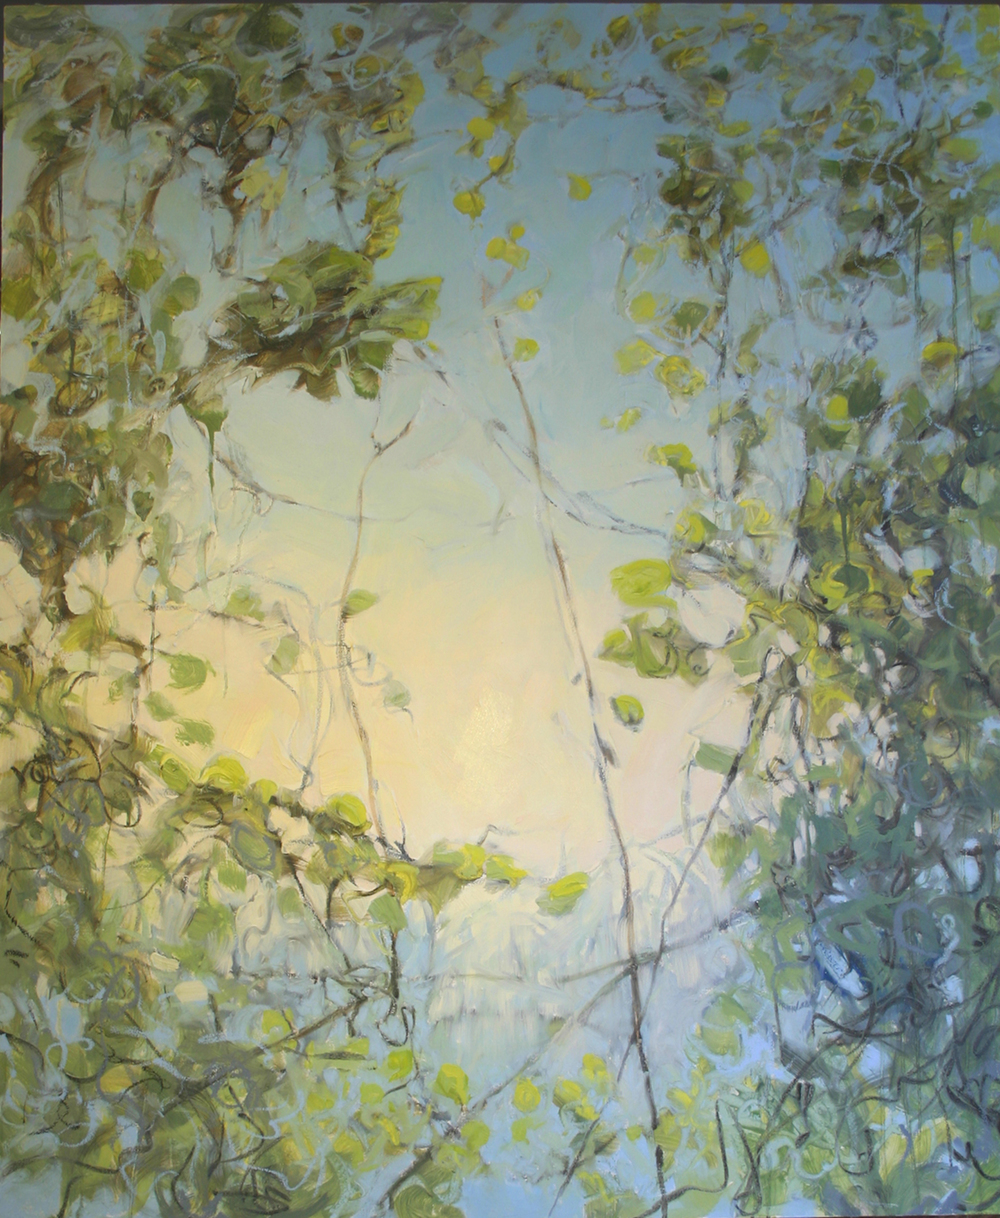 "Sky Vines, Jamie Young, 2012, 72 x 60"" Oil on canvas"